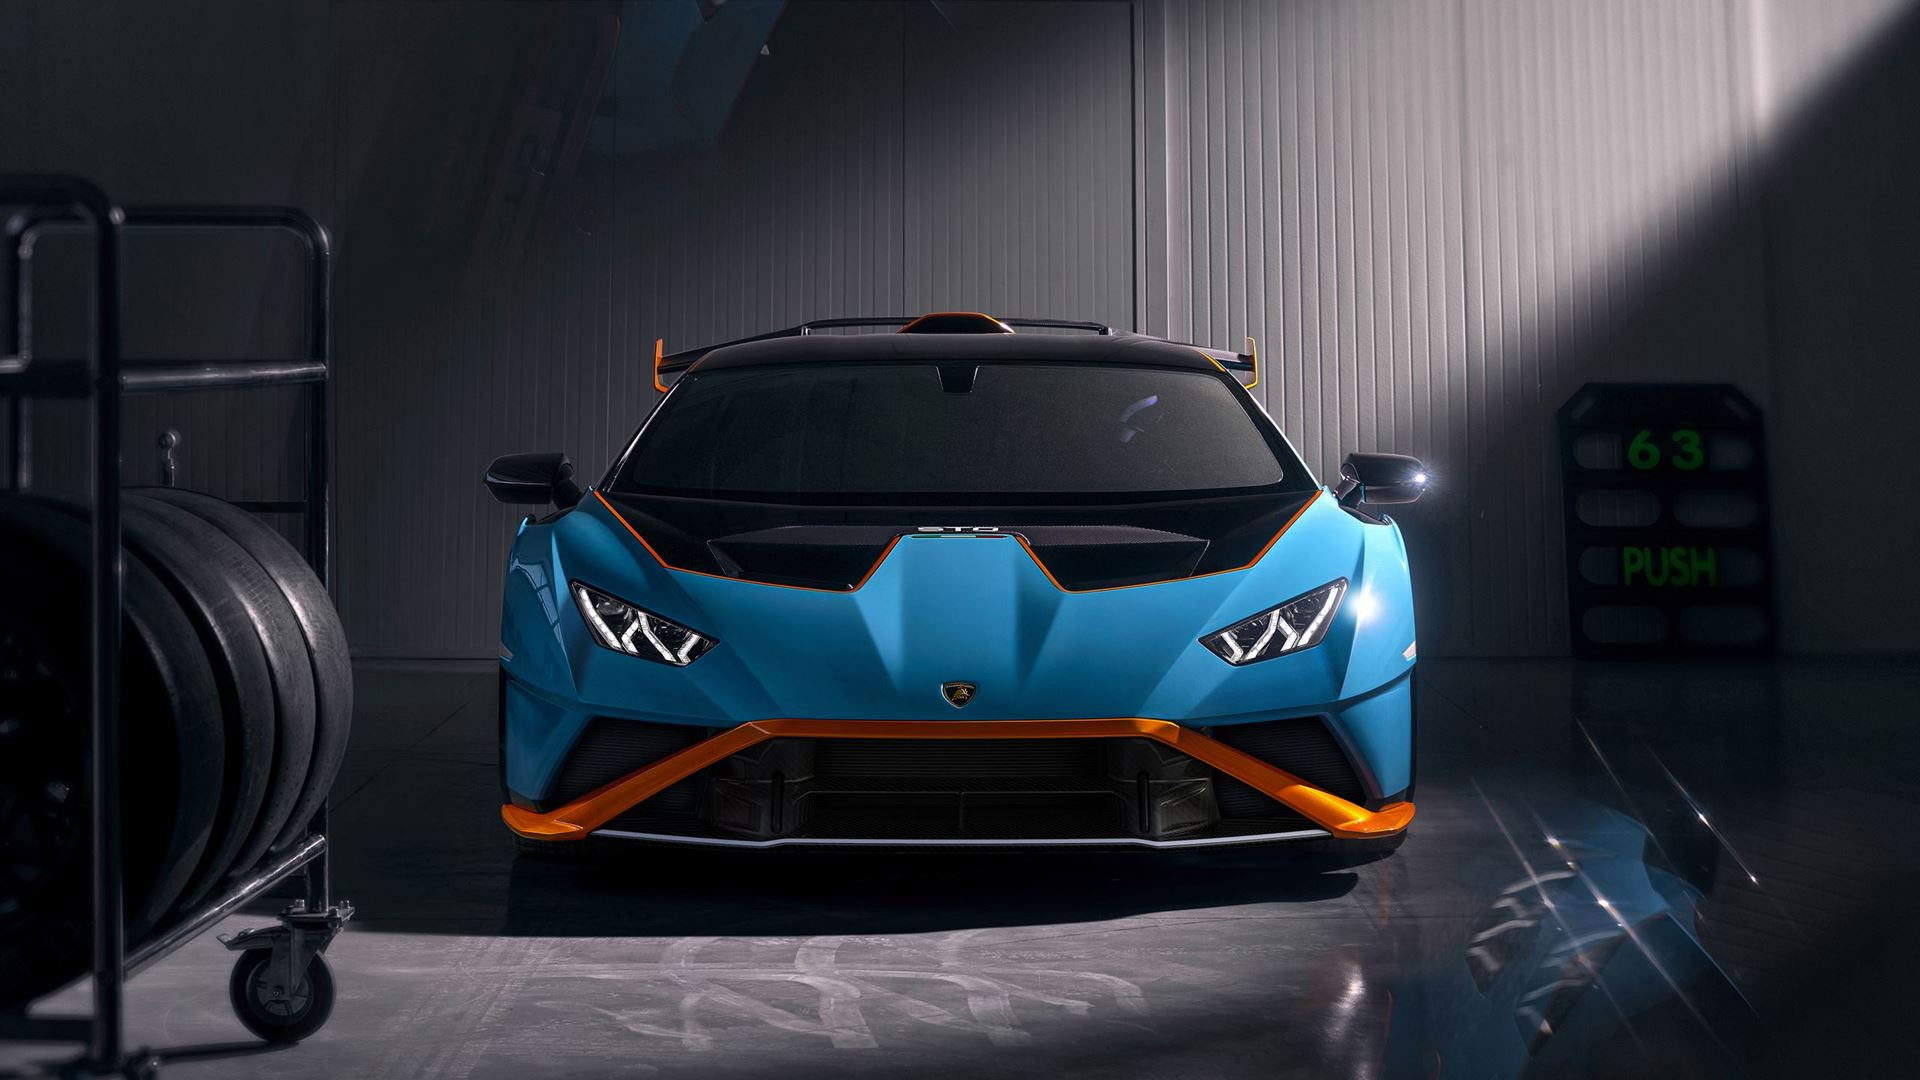 Lamborghini debuts in the Rocket League video game with the Huracán STO - Image 2